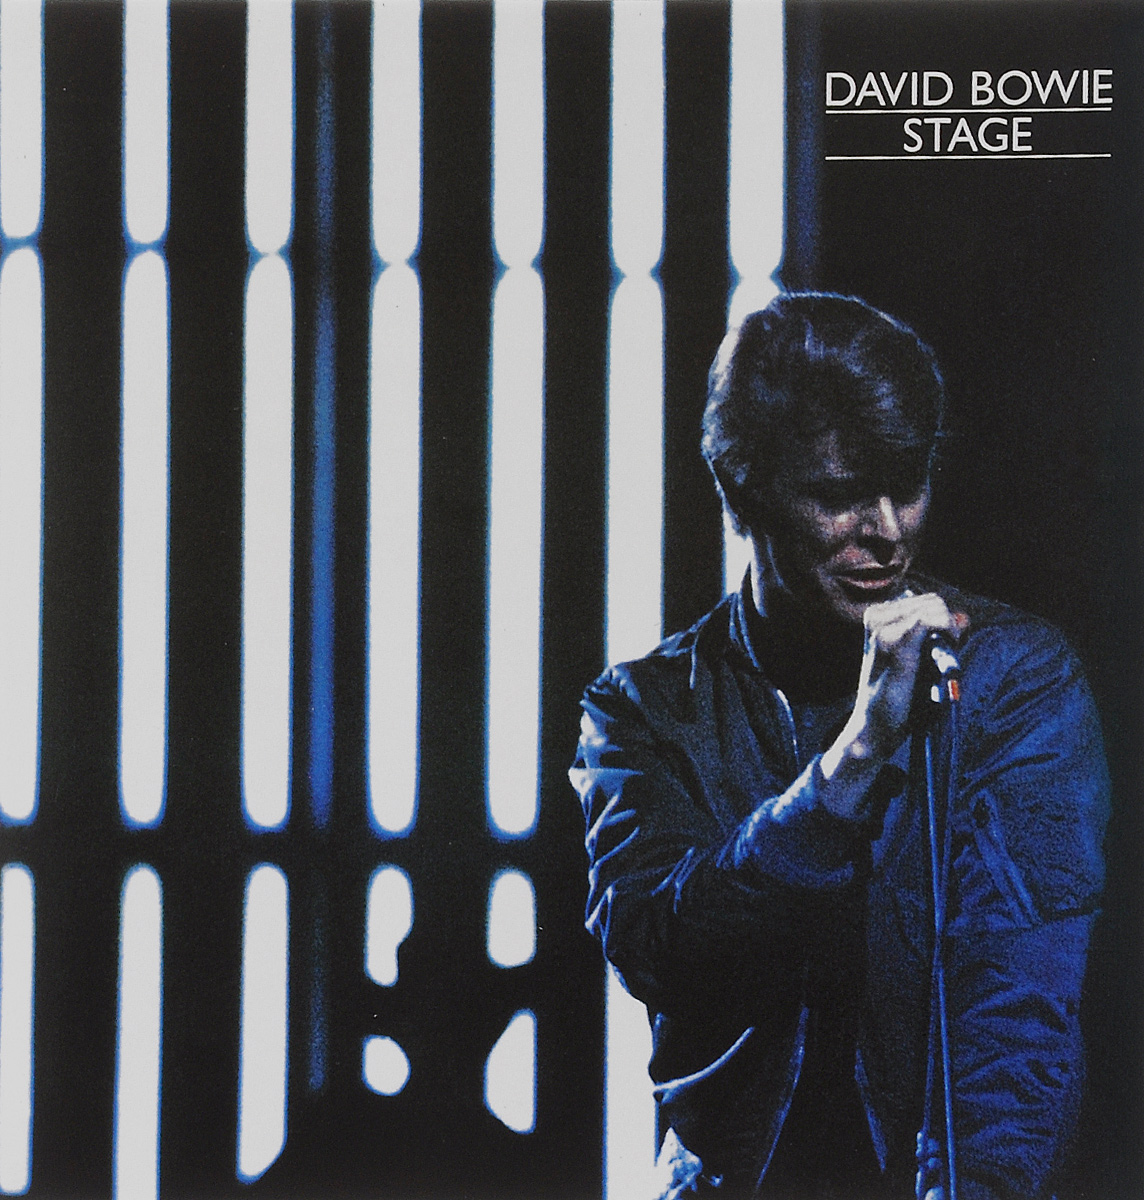 Дэвид Боуи David Bowie. Stage (2 CD) дэвид боуи david bowie live santa monica 72 2 lp